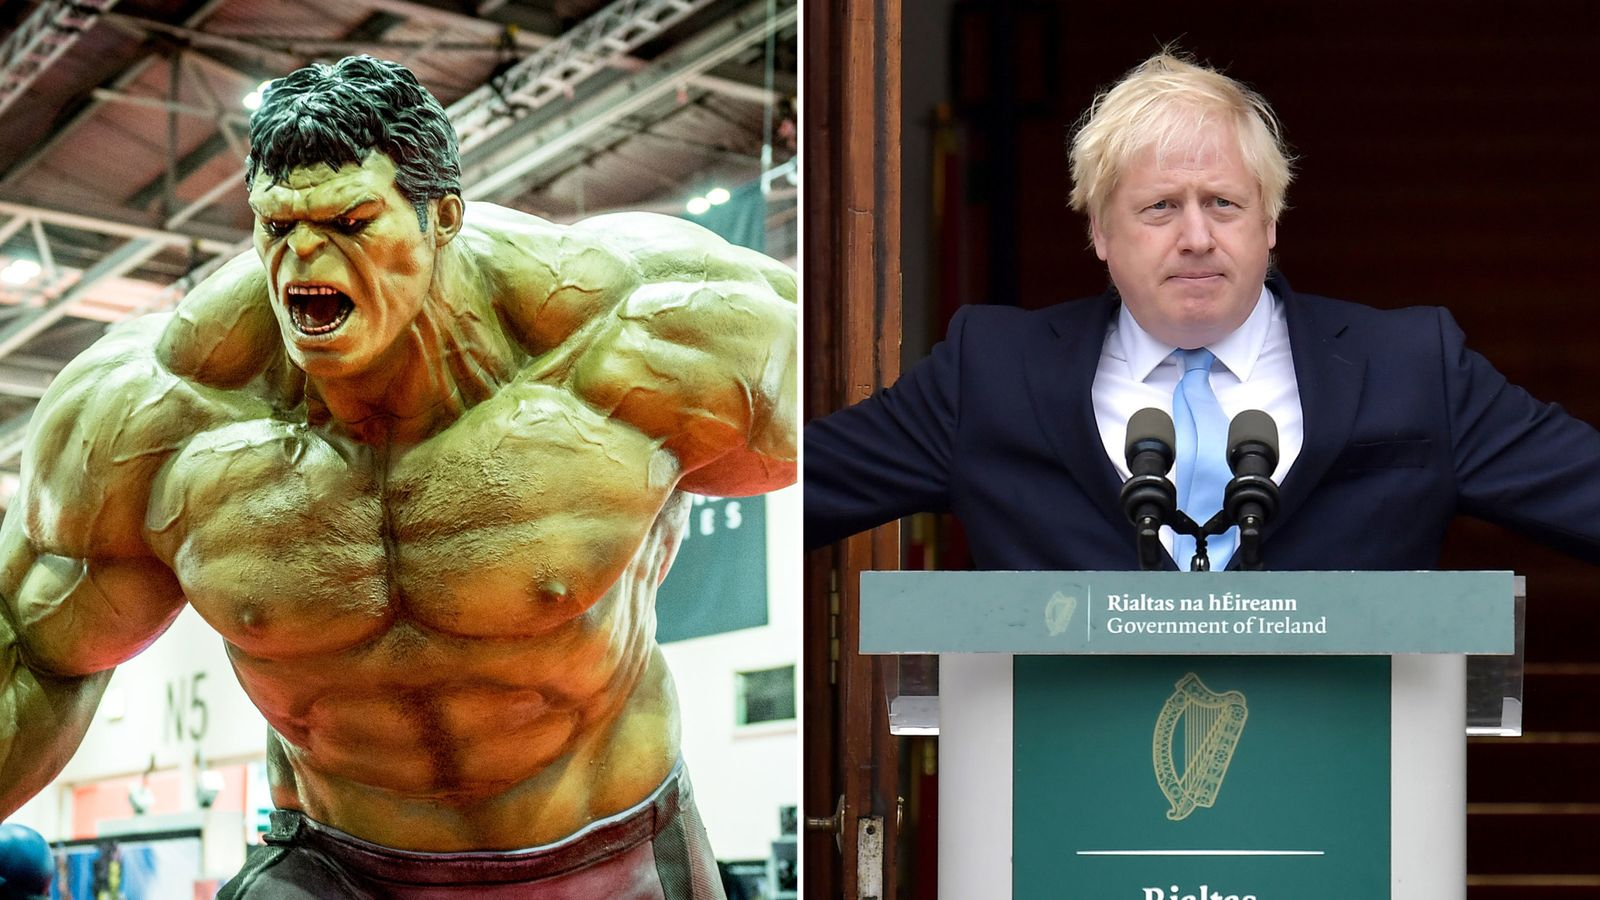 PM likens UK to Hulk as Brexit sec says 'landing zone' in sight for deal